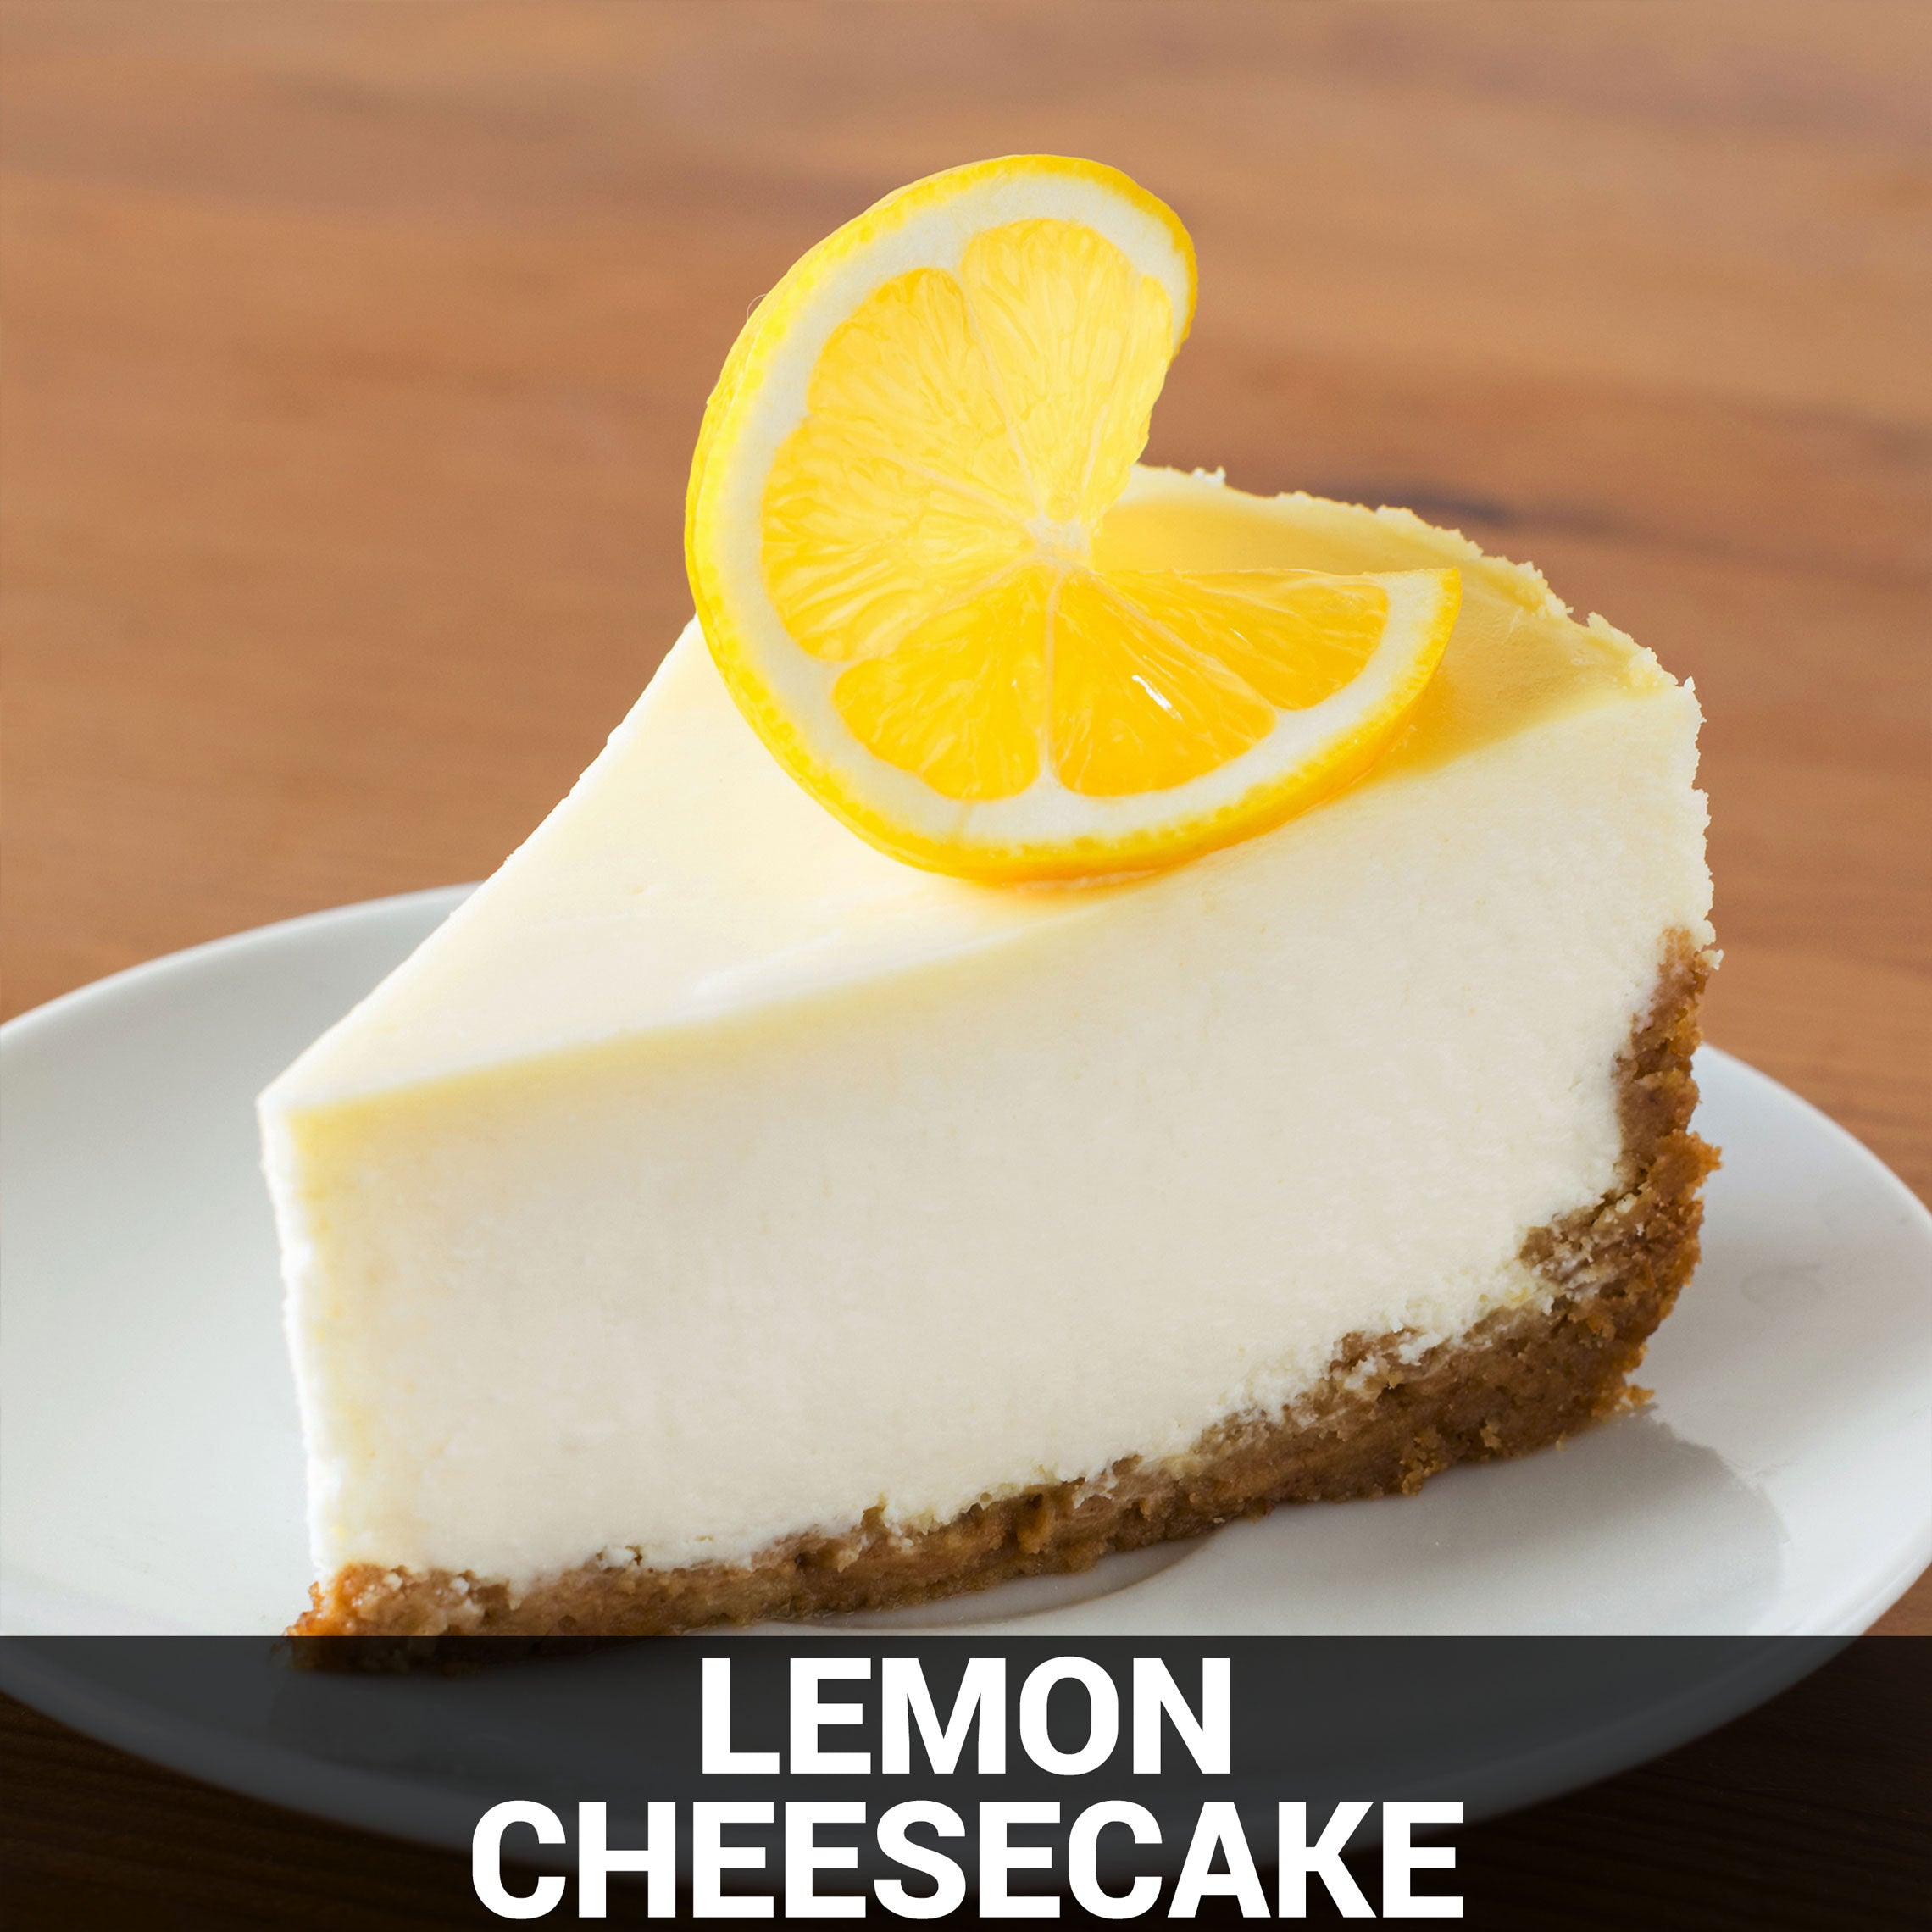 Lemon Cheesecake Recipe - Foods Alive